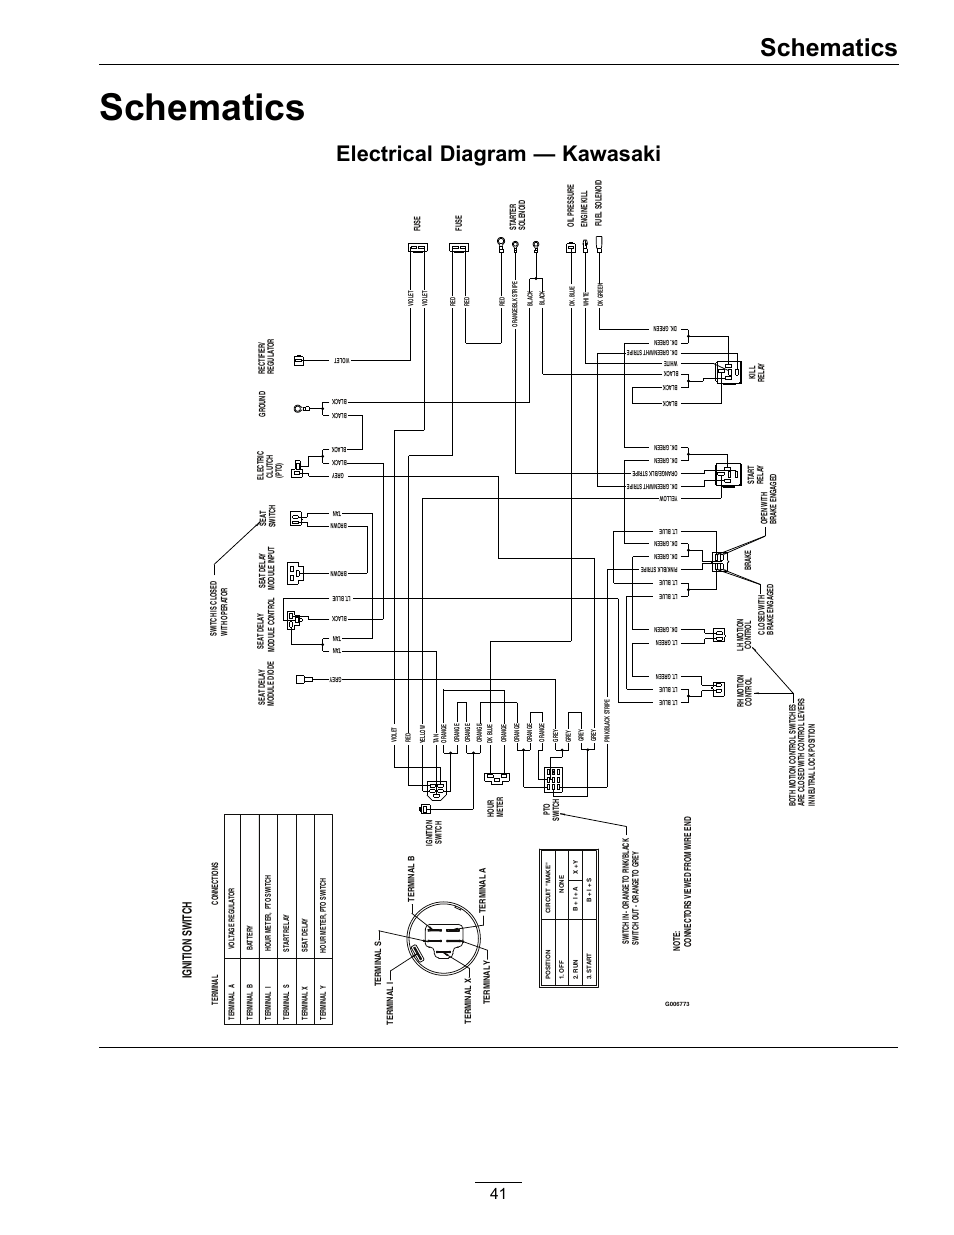 Exmark Wiring Diagram. Wiring. Wiring Diagram Images